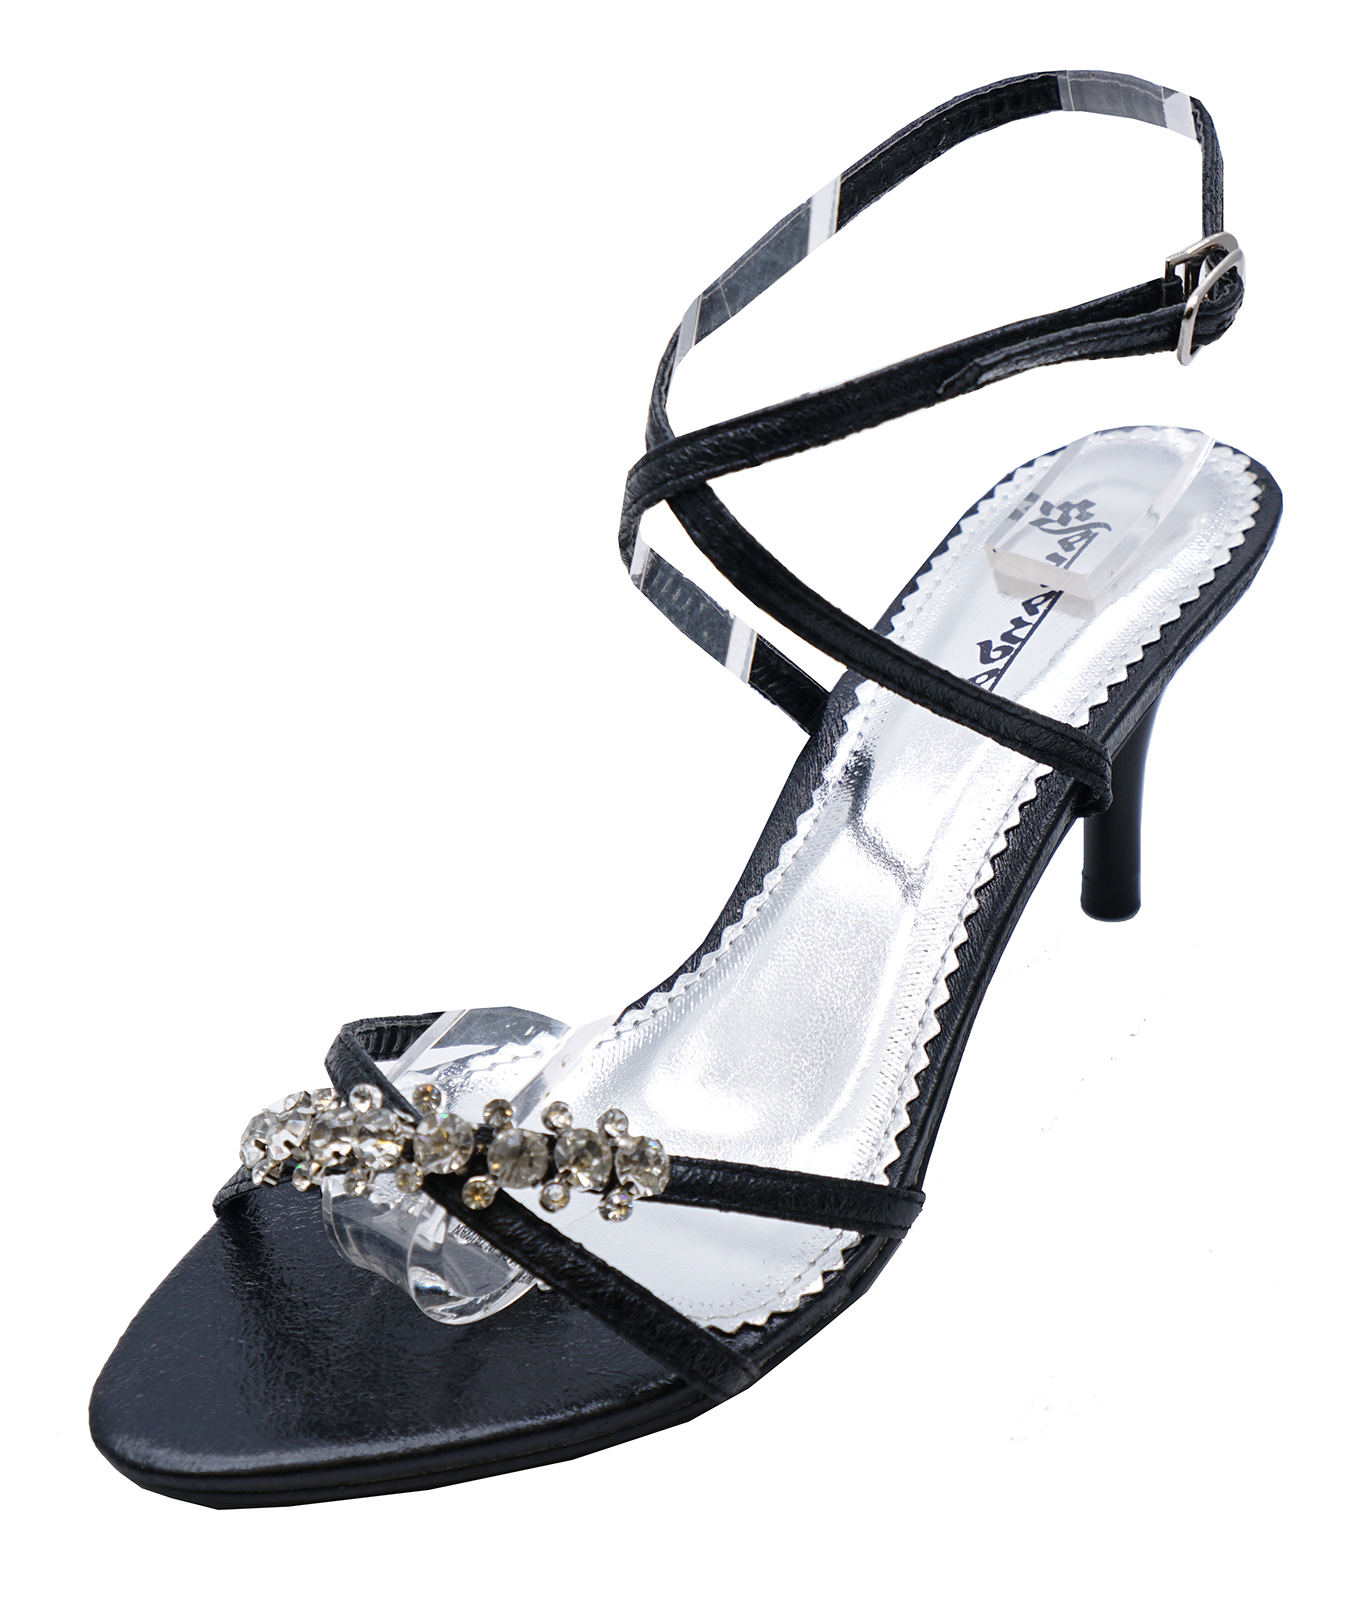 LADIES BLACK KITTEN HEEL STRAPPY EVENING DIAMANTE ELEGANT SANDALS ...